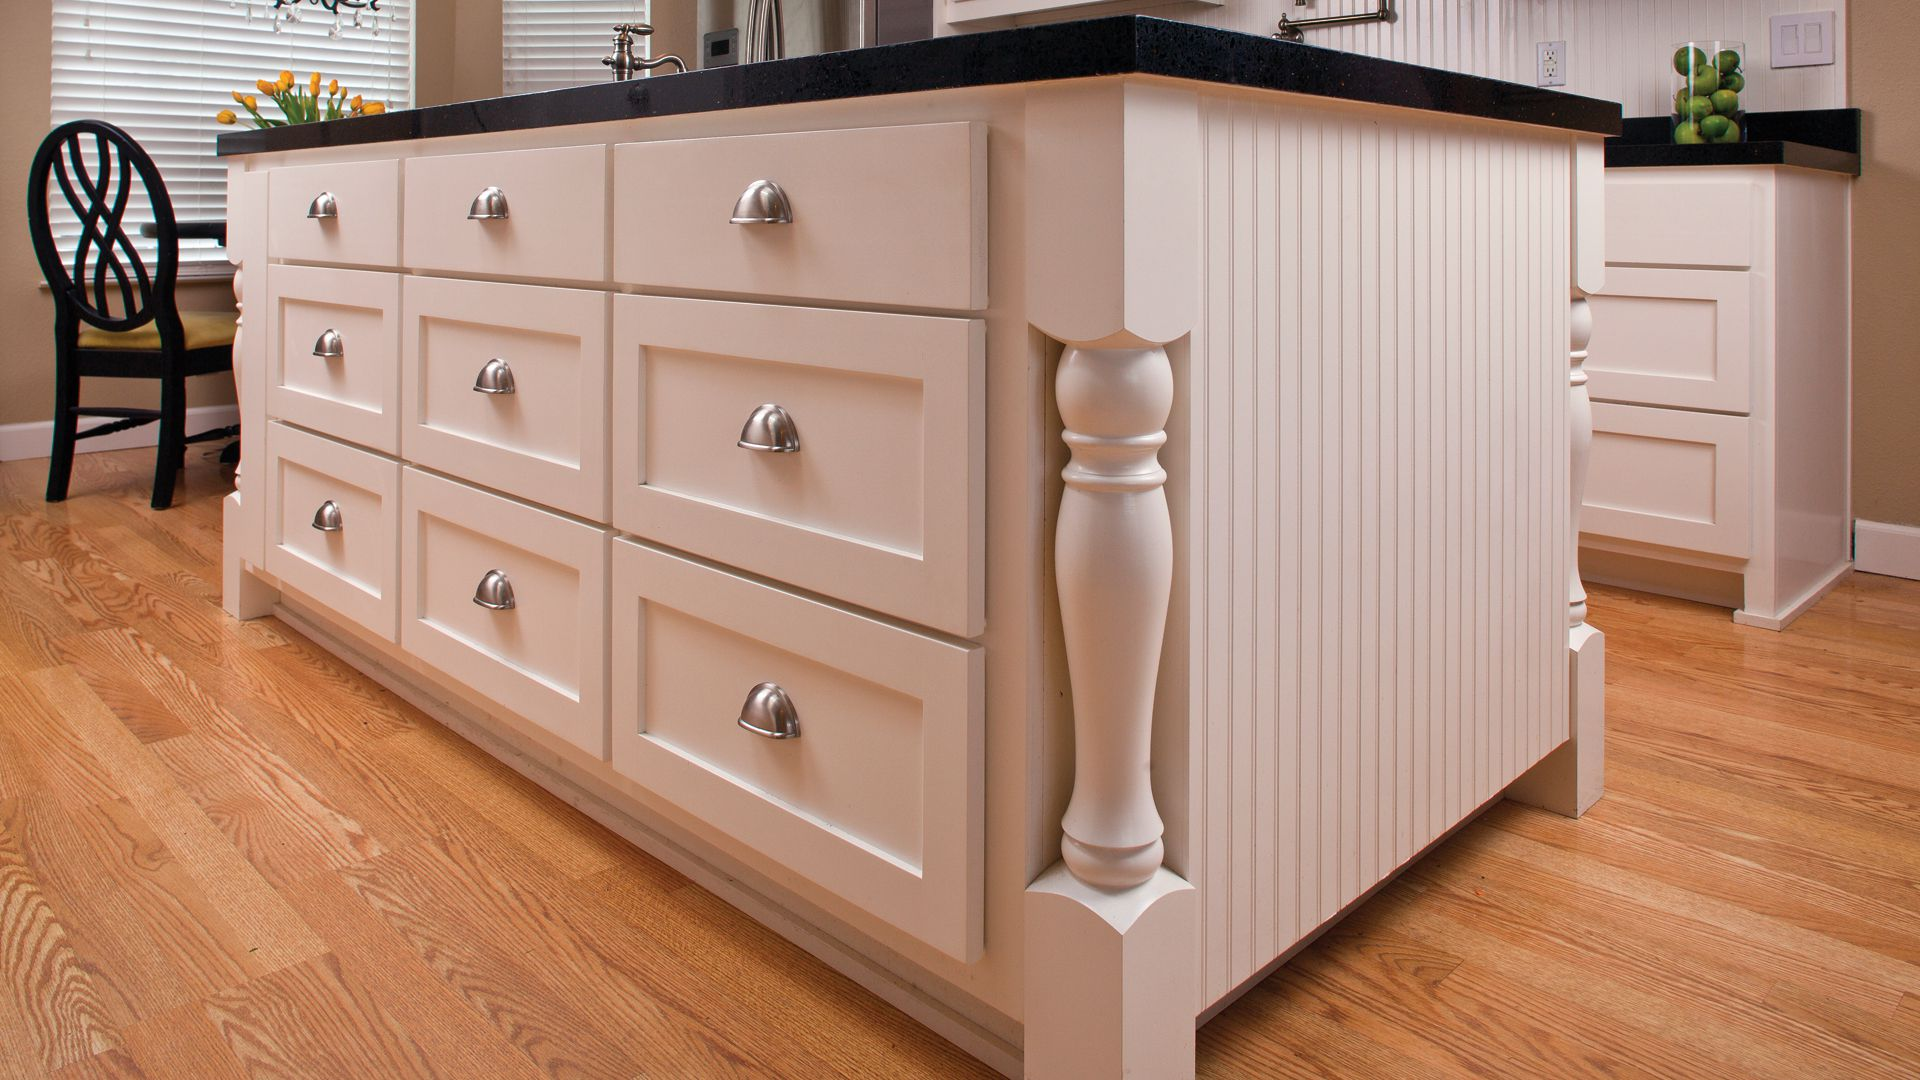 home depot kitchen cabinets sale full size of kitchen kitchen anderson bow window new kitchen cabinets best home depot sarkem effective kitchen island complete cabinets keep